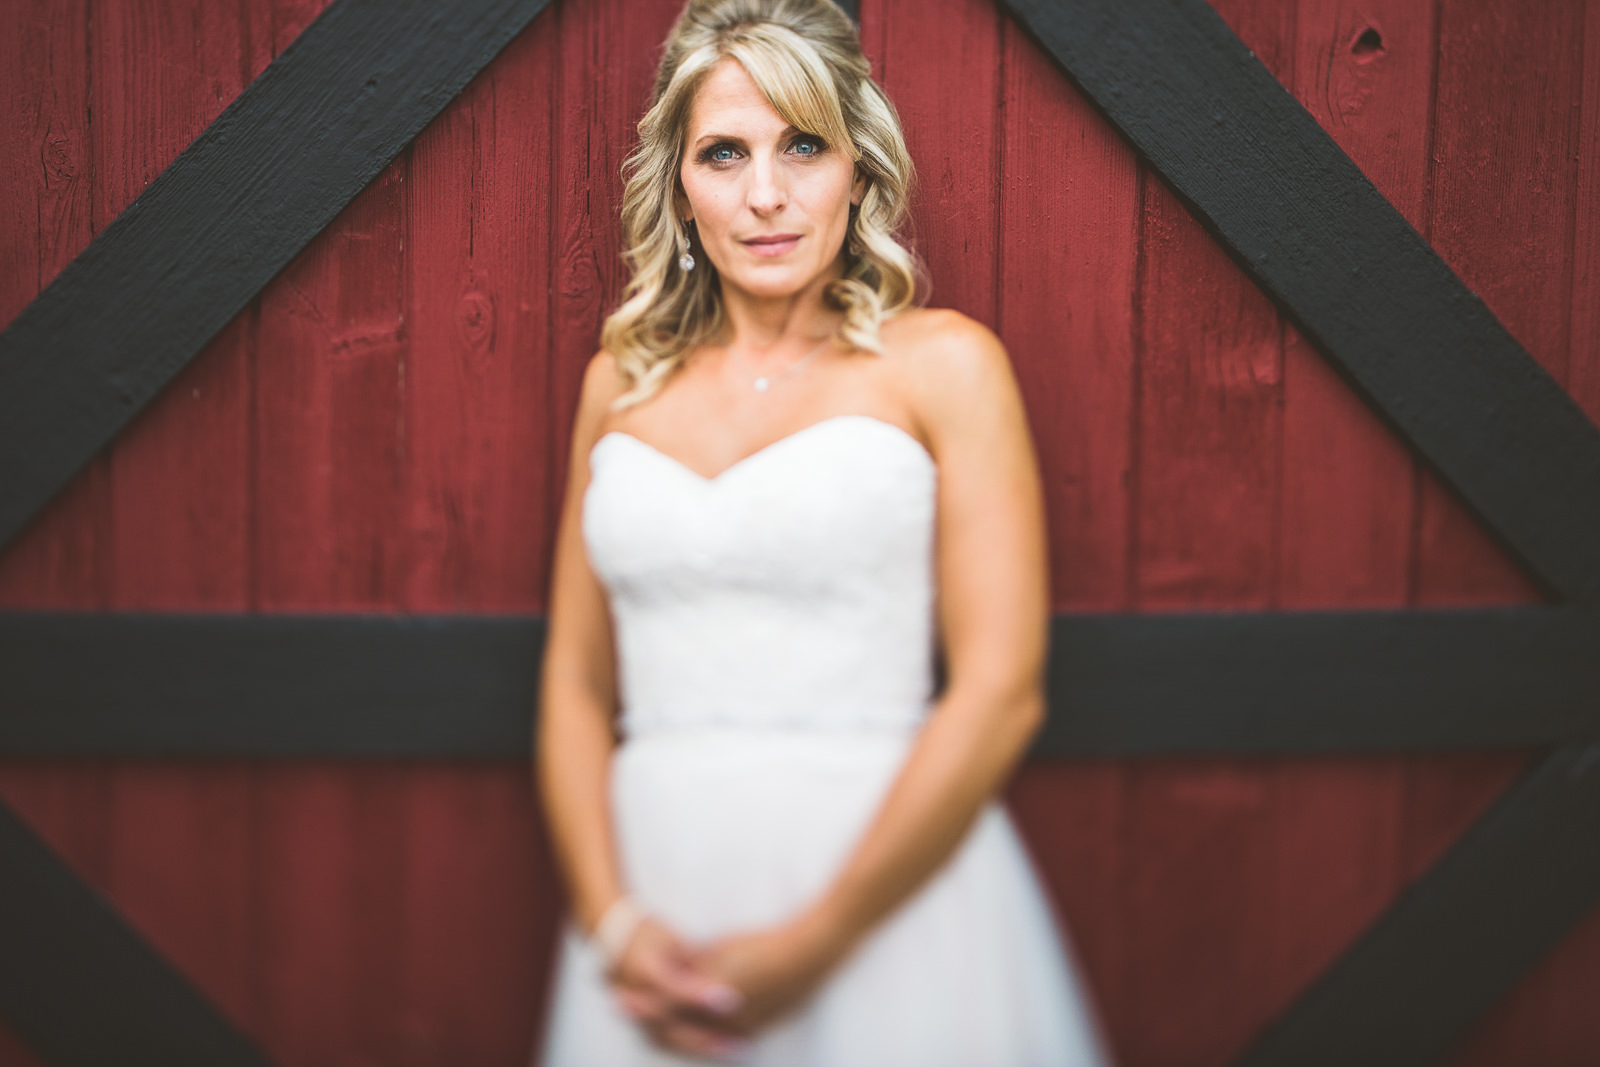 10 bridal portrait - Karen + Scott // Fishermens Inn Wedding Photographer Elburn Illinois